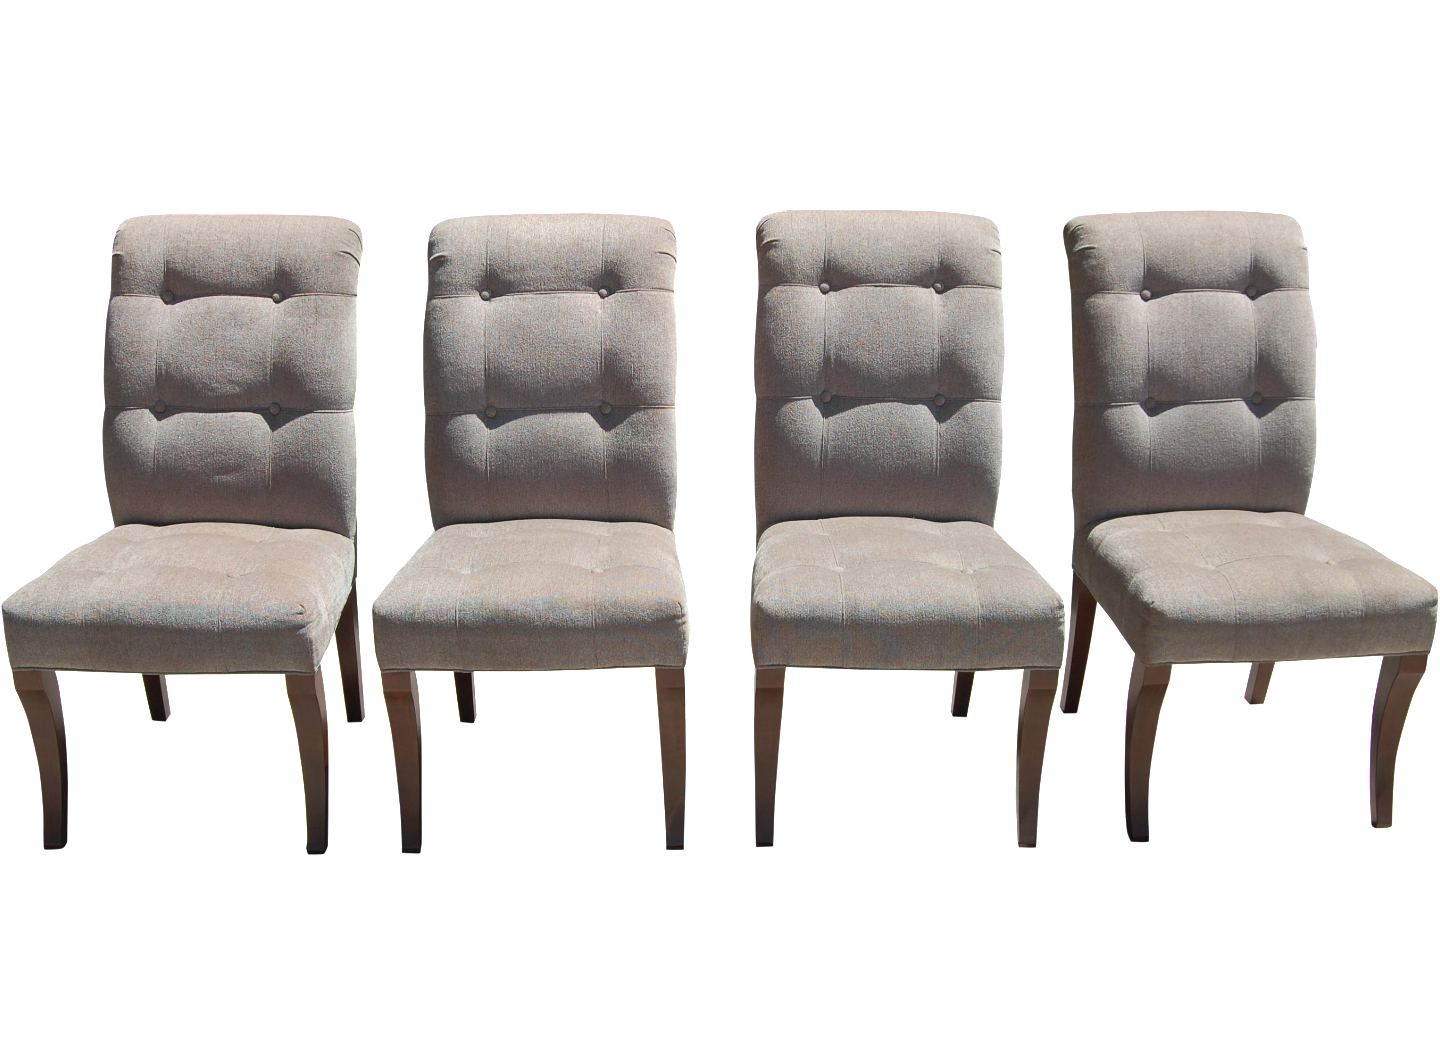 Ethan Allen Dining Chairs Set of 4 Chairish : 4e00c5b8 2667 40c5 b8c1 f65c6b9907b7aspectfitampwidth640ampheight640 from www.chairish.com size 640 x 640 jpeg 28kB